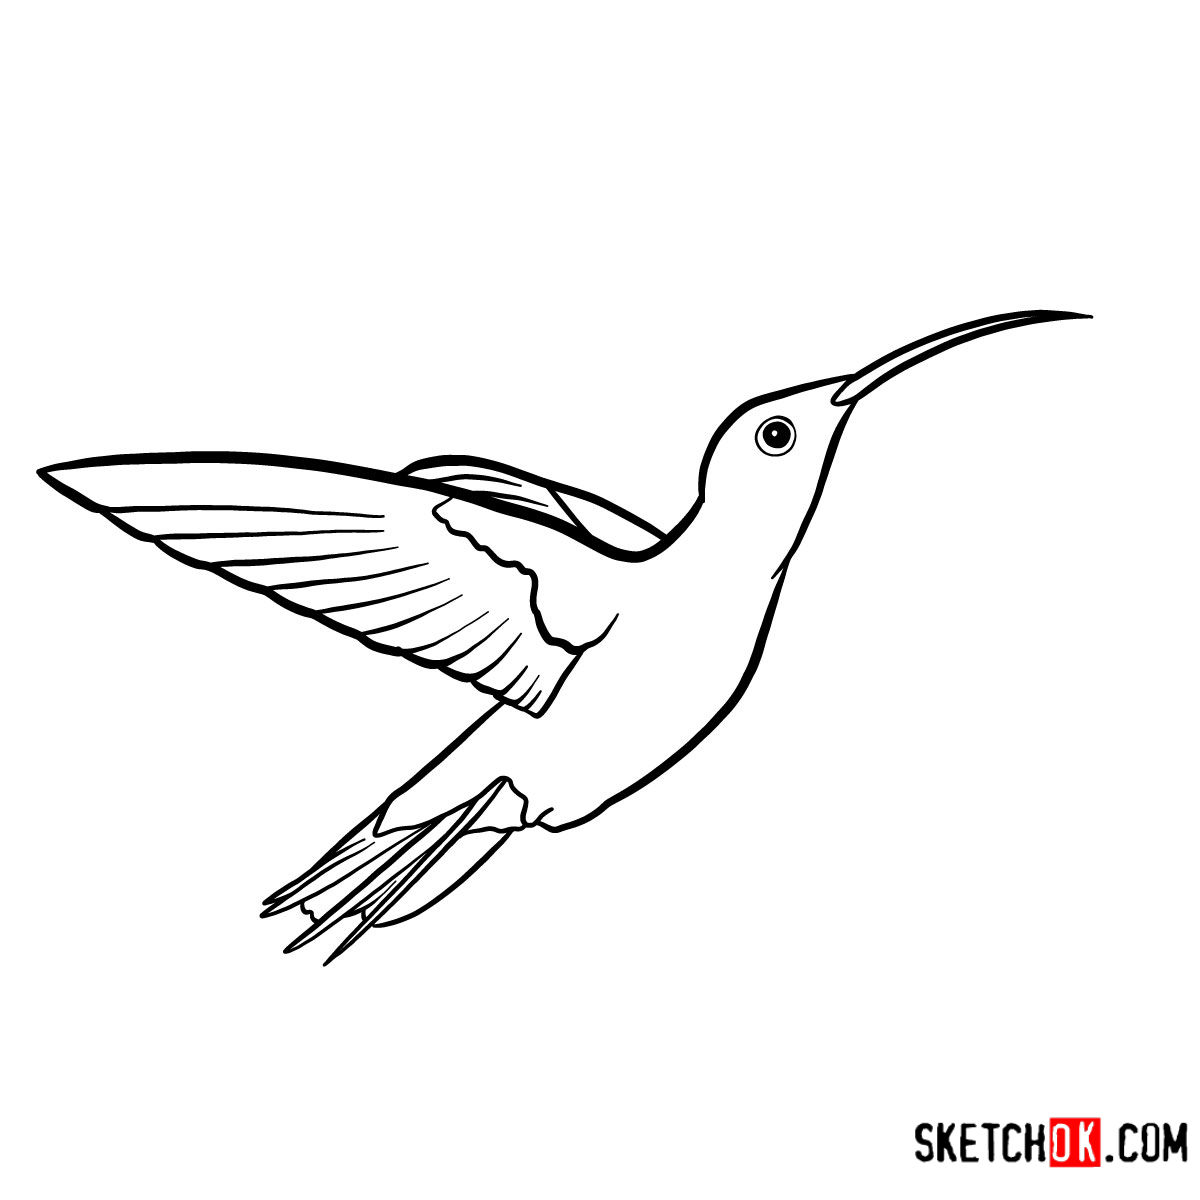 How to draw a Colibri bird